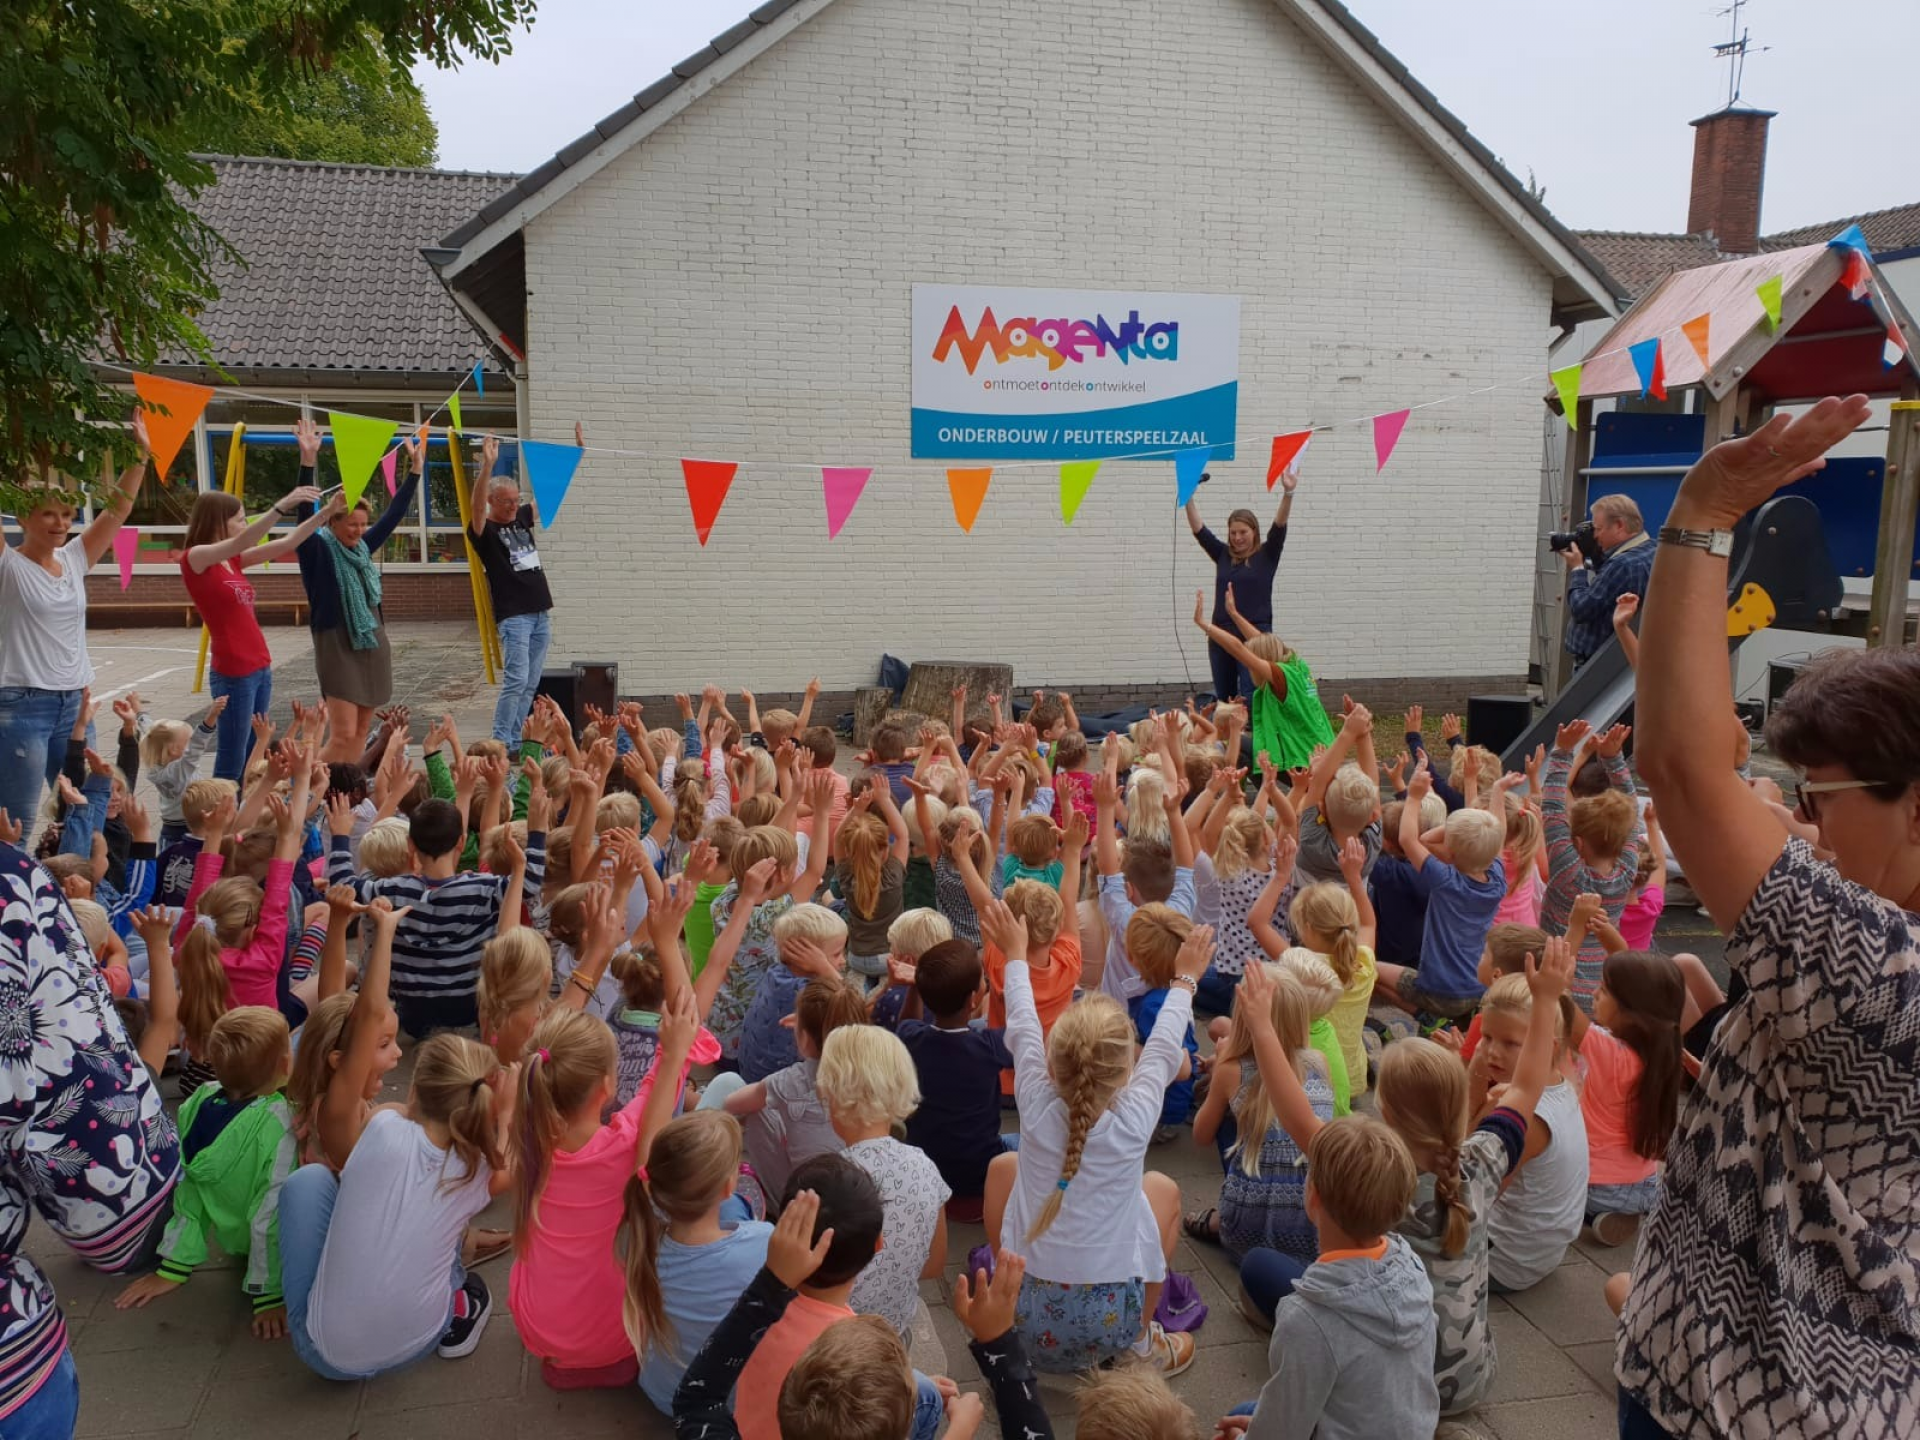 Video: IKC Magenta officieel van start